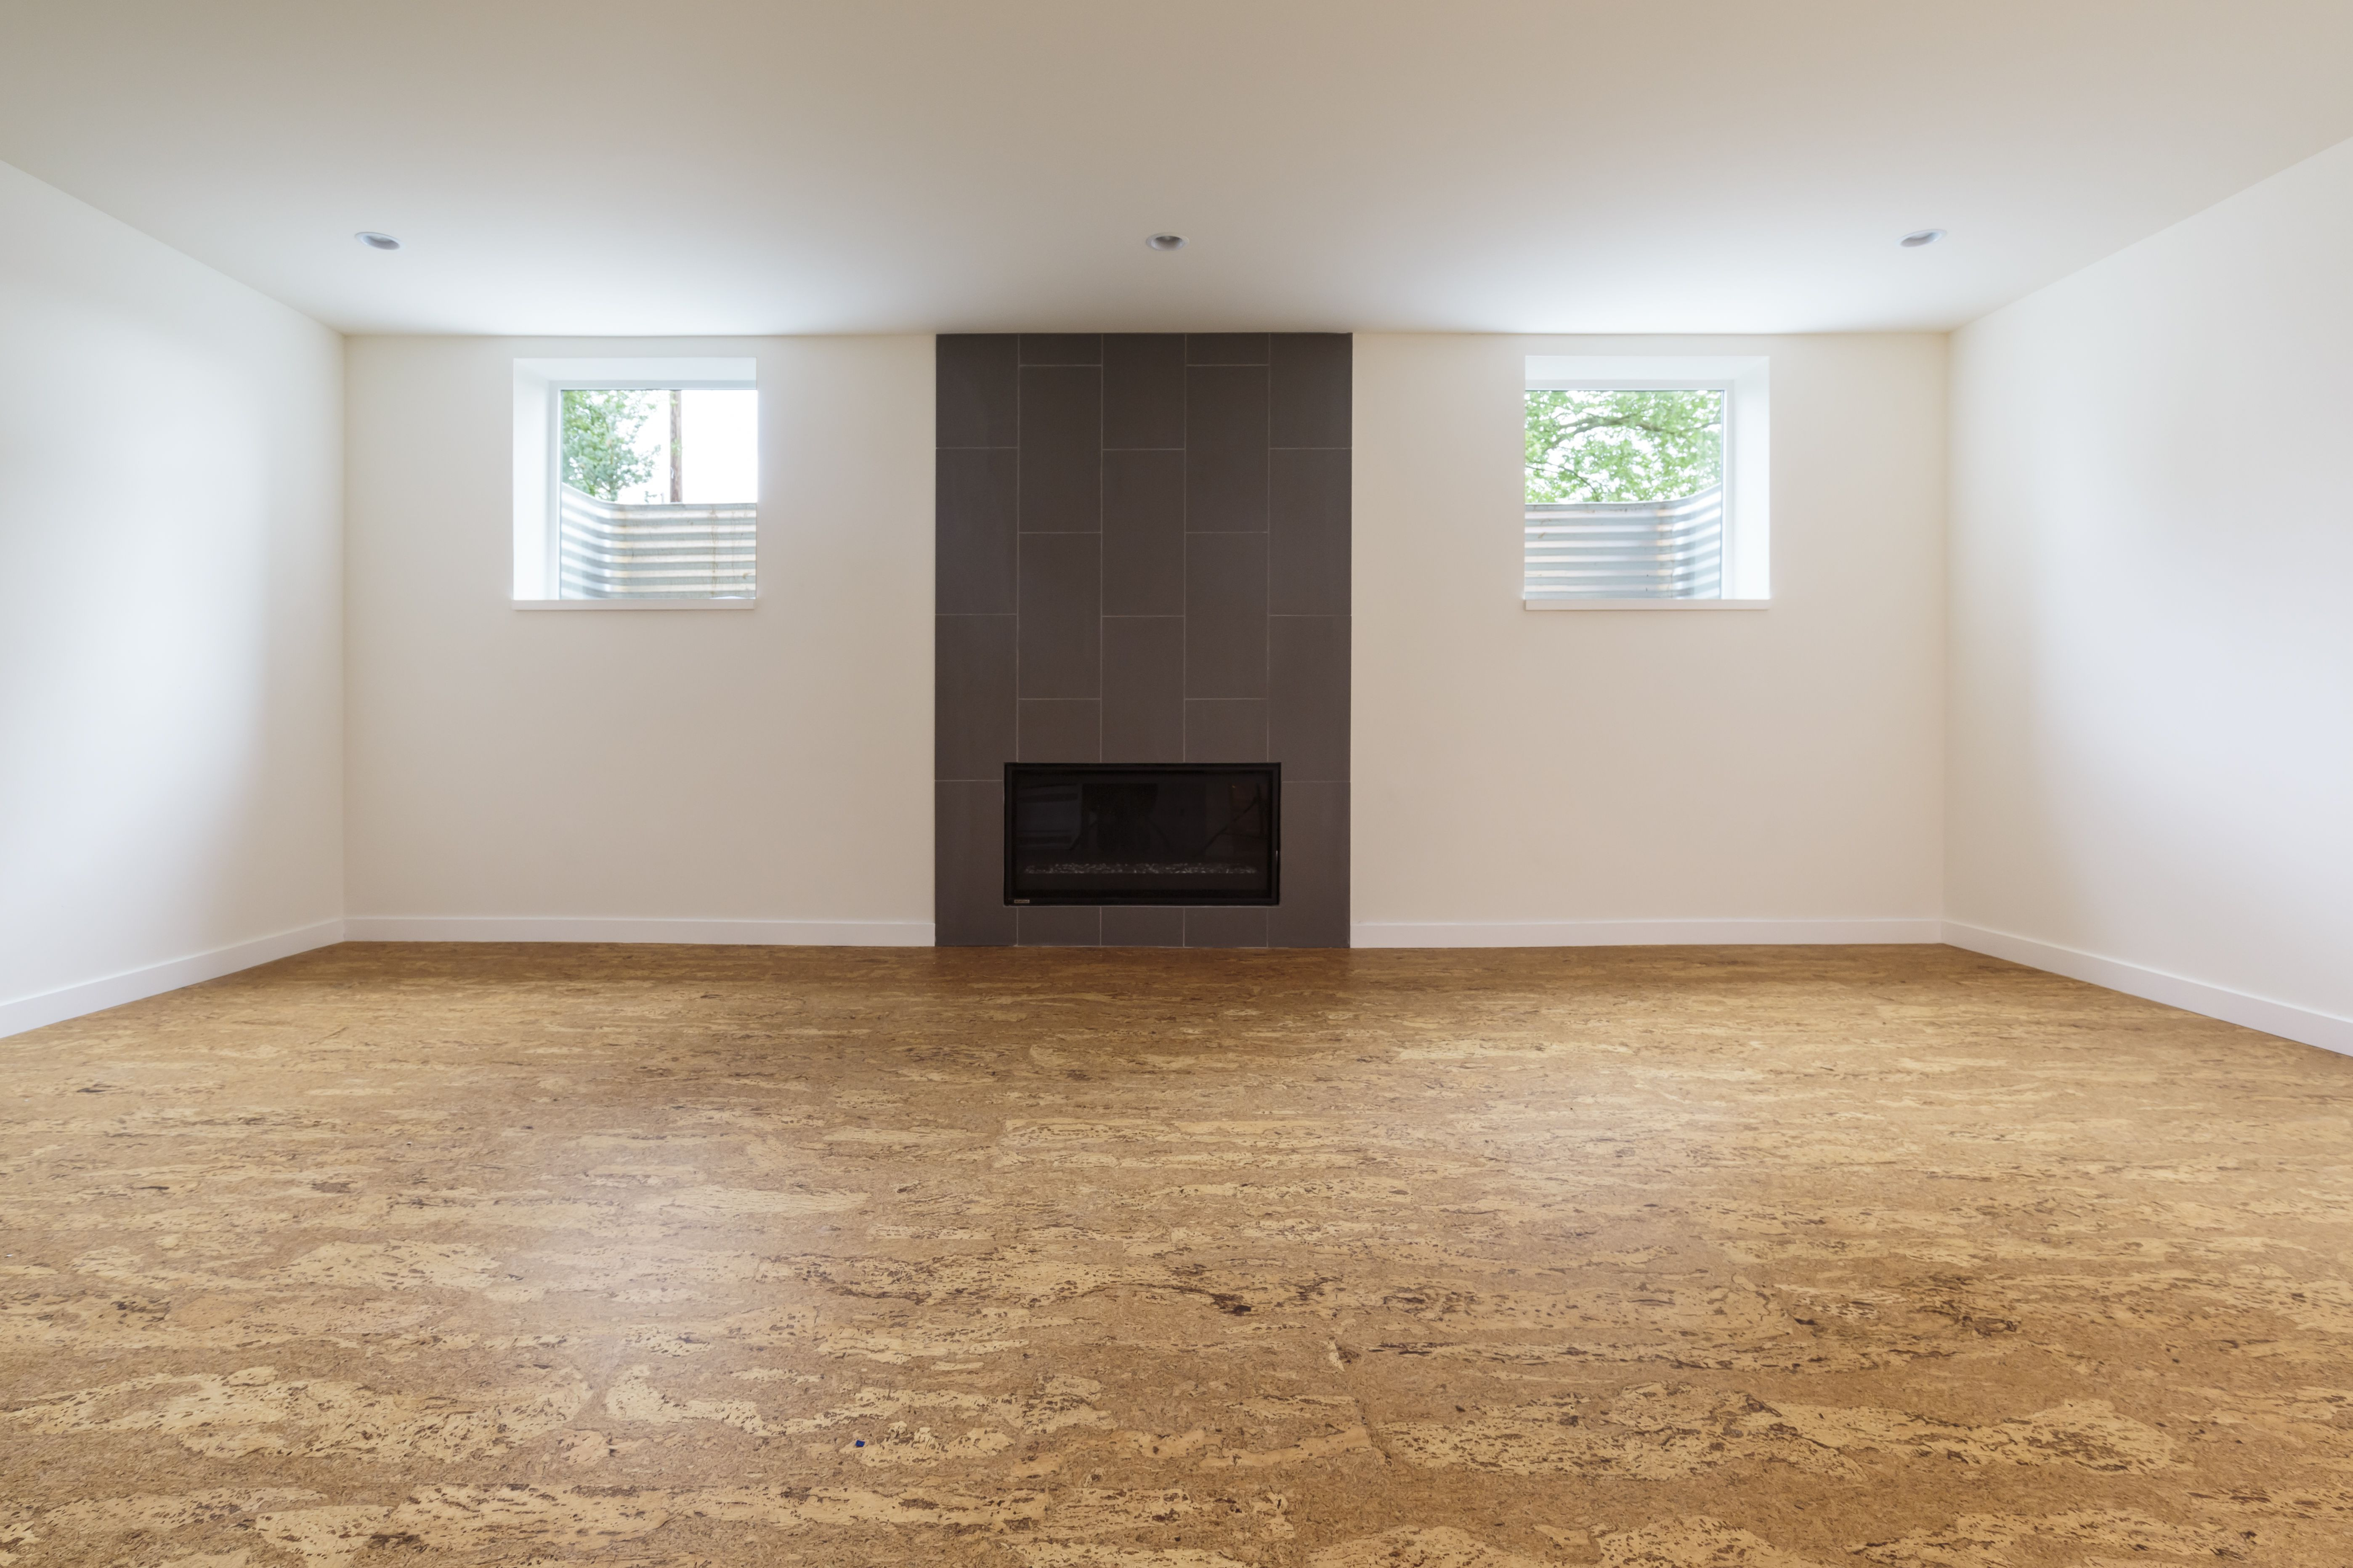 hardwood flooring price list of cork flooring pros cons and cost inside cork flooring in unfurnished new home 647206431 57e7c0c95f9b586c3504ca07